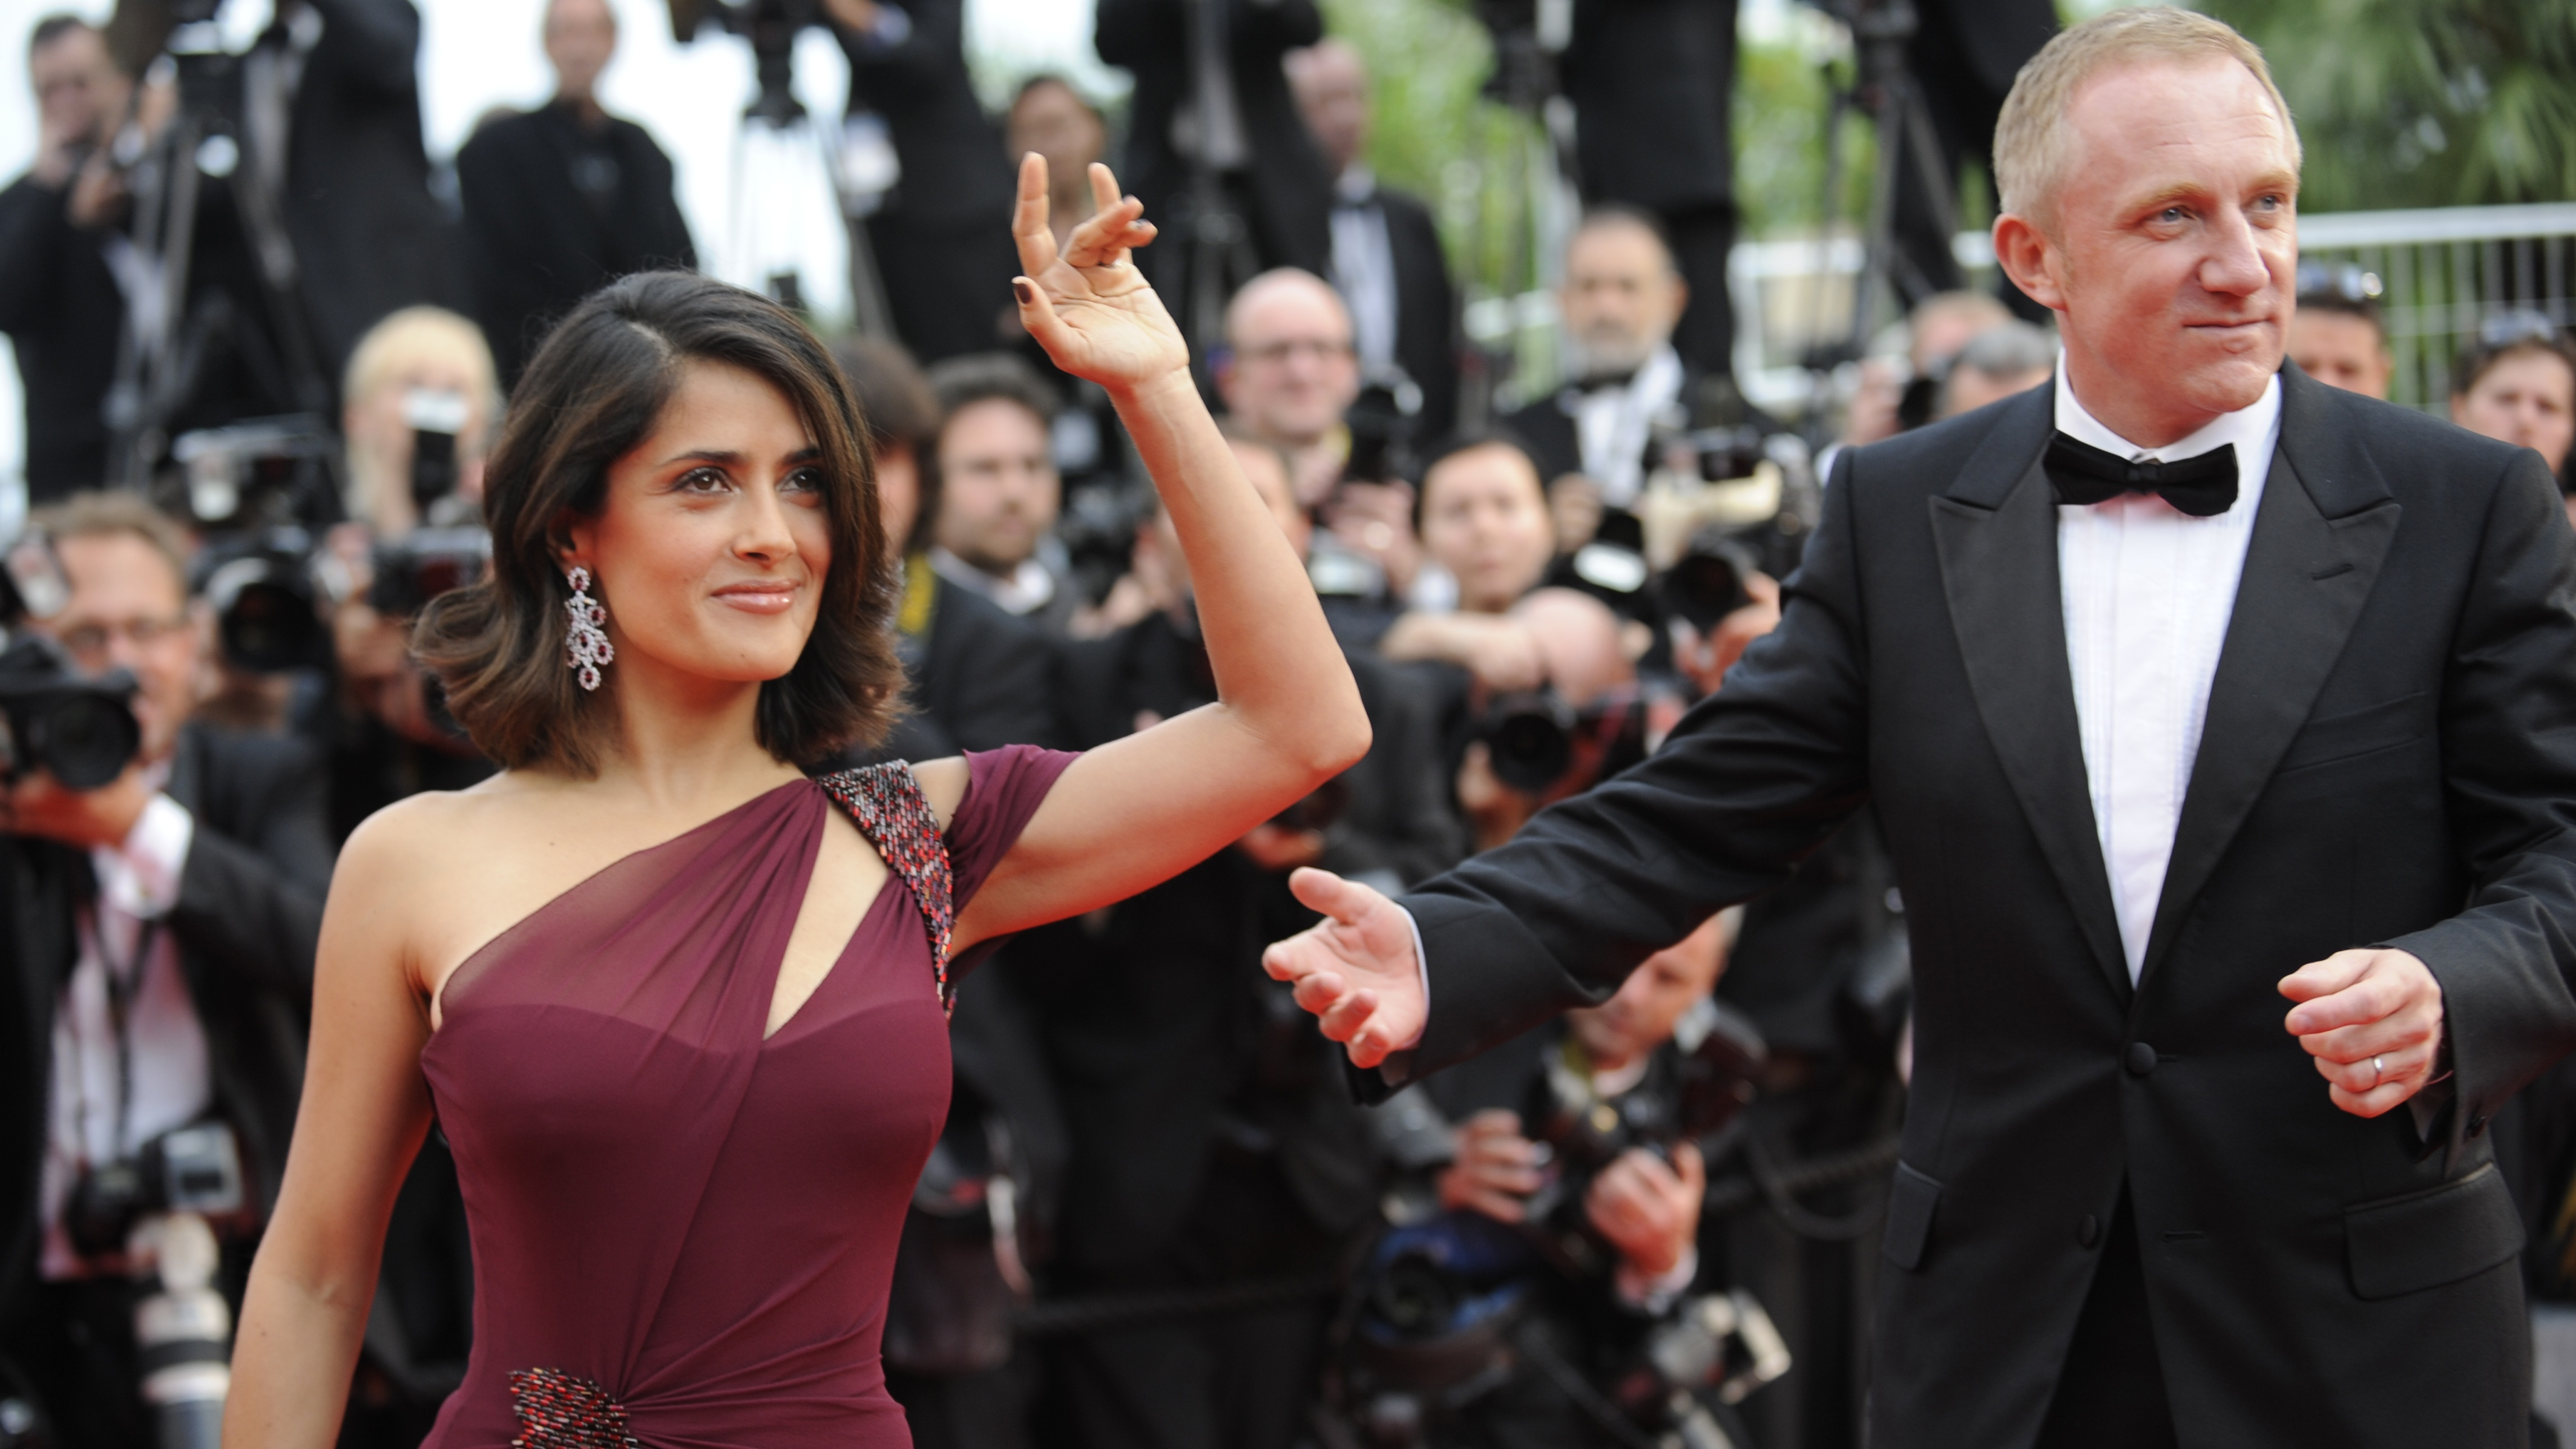 Salma Hayek Defends The Idea She Married Her Husband For His Billions